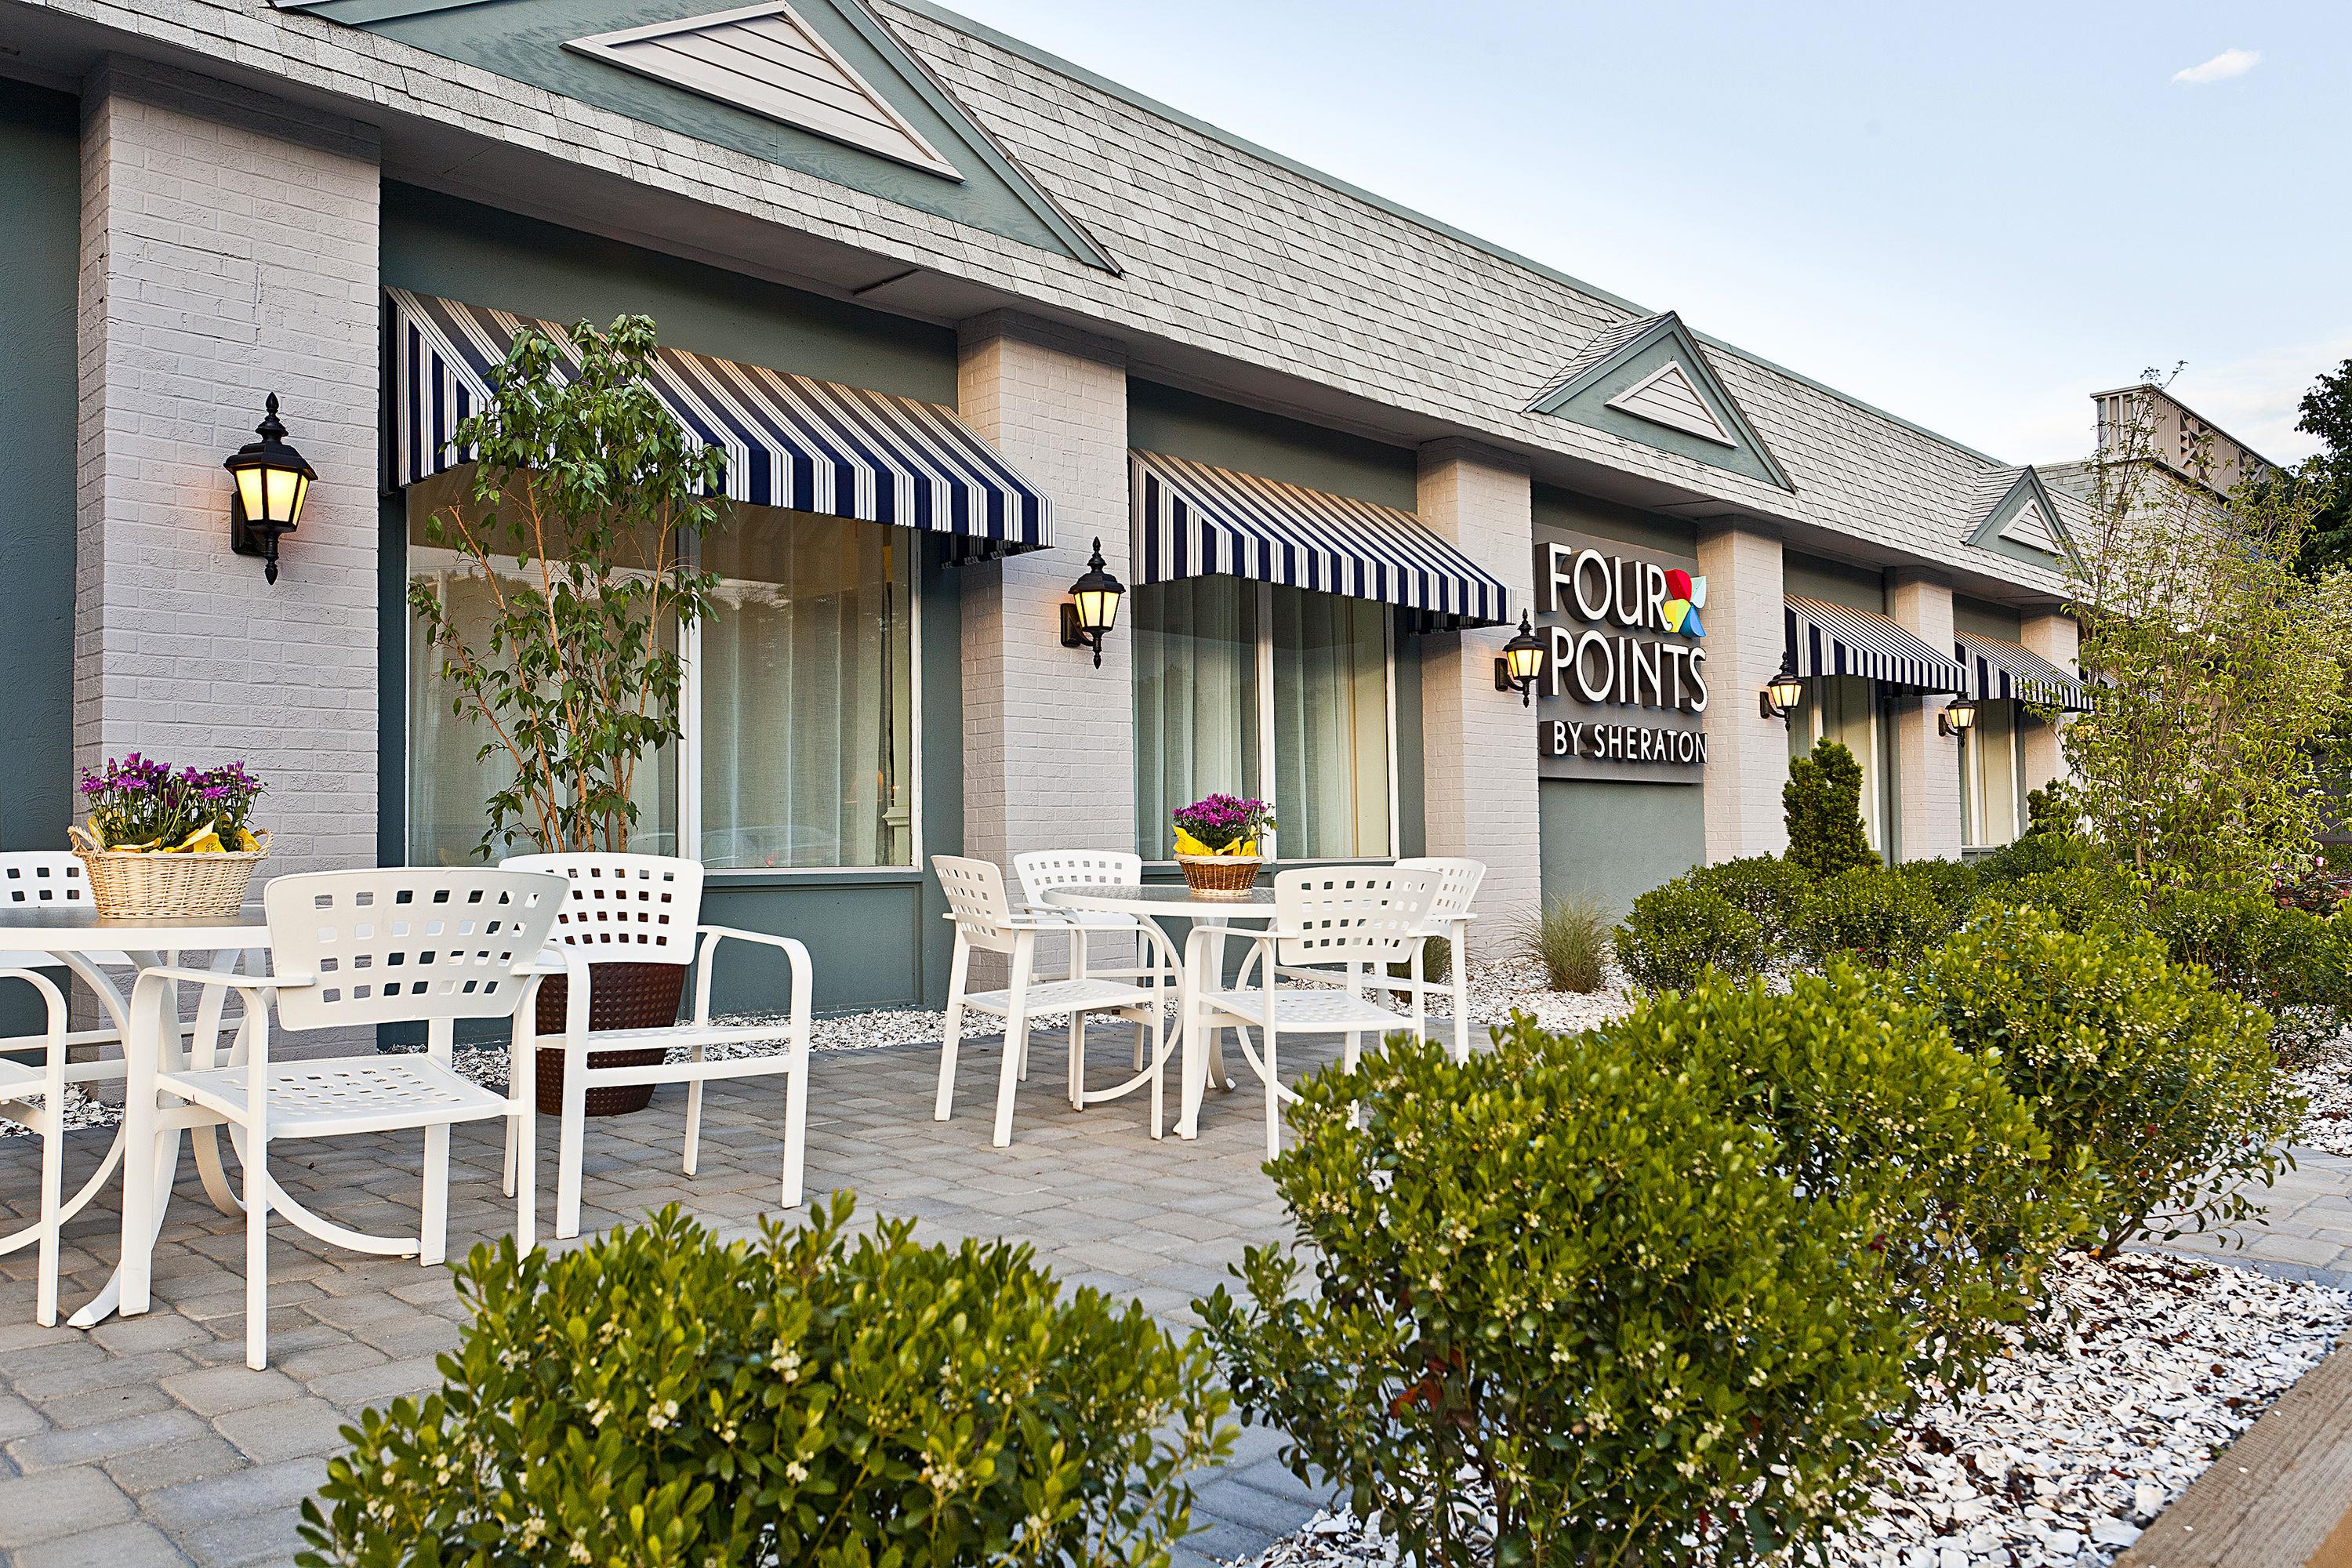 Four Points by Sheraton Eastham Cape Cod image 1